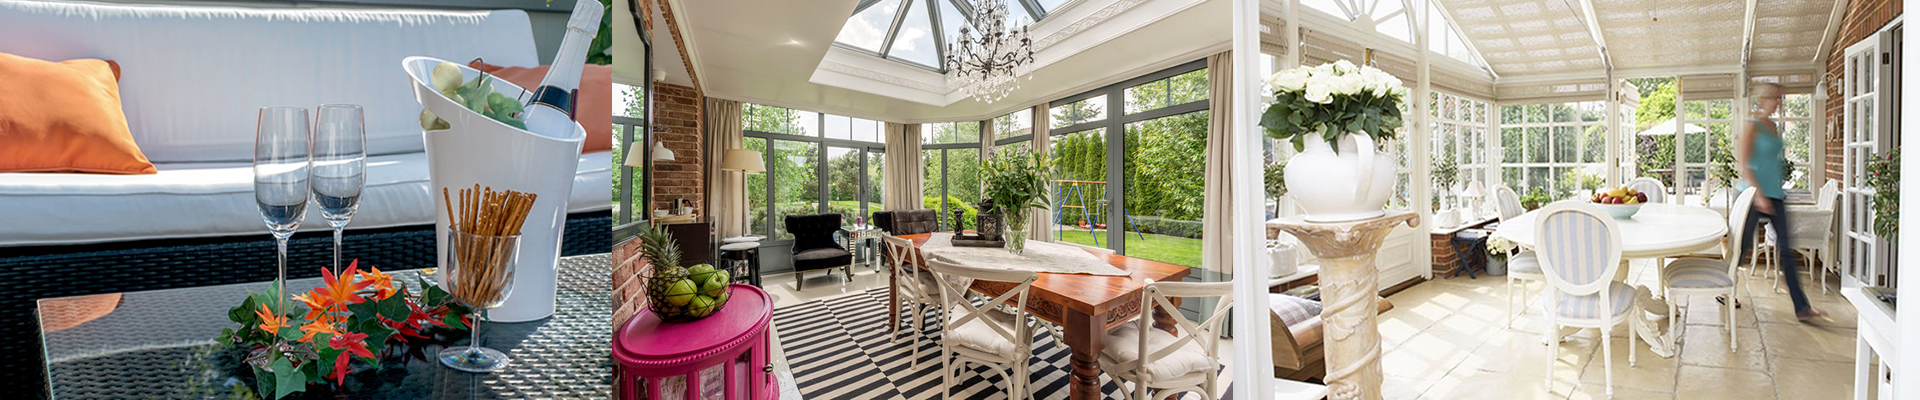 Conservatory | Seating, Lighting & Conservatory Furniture